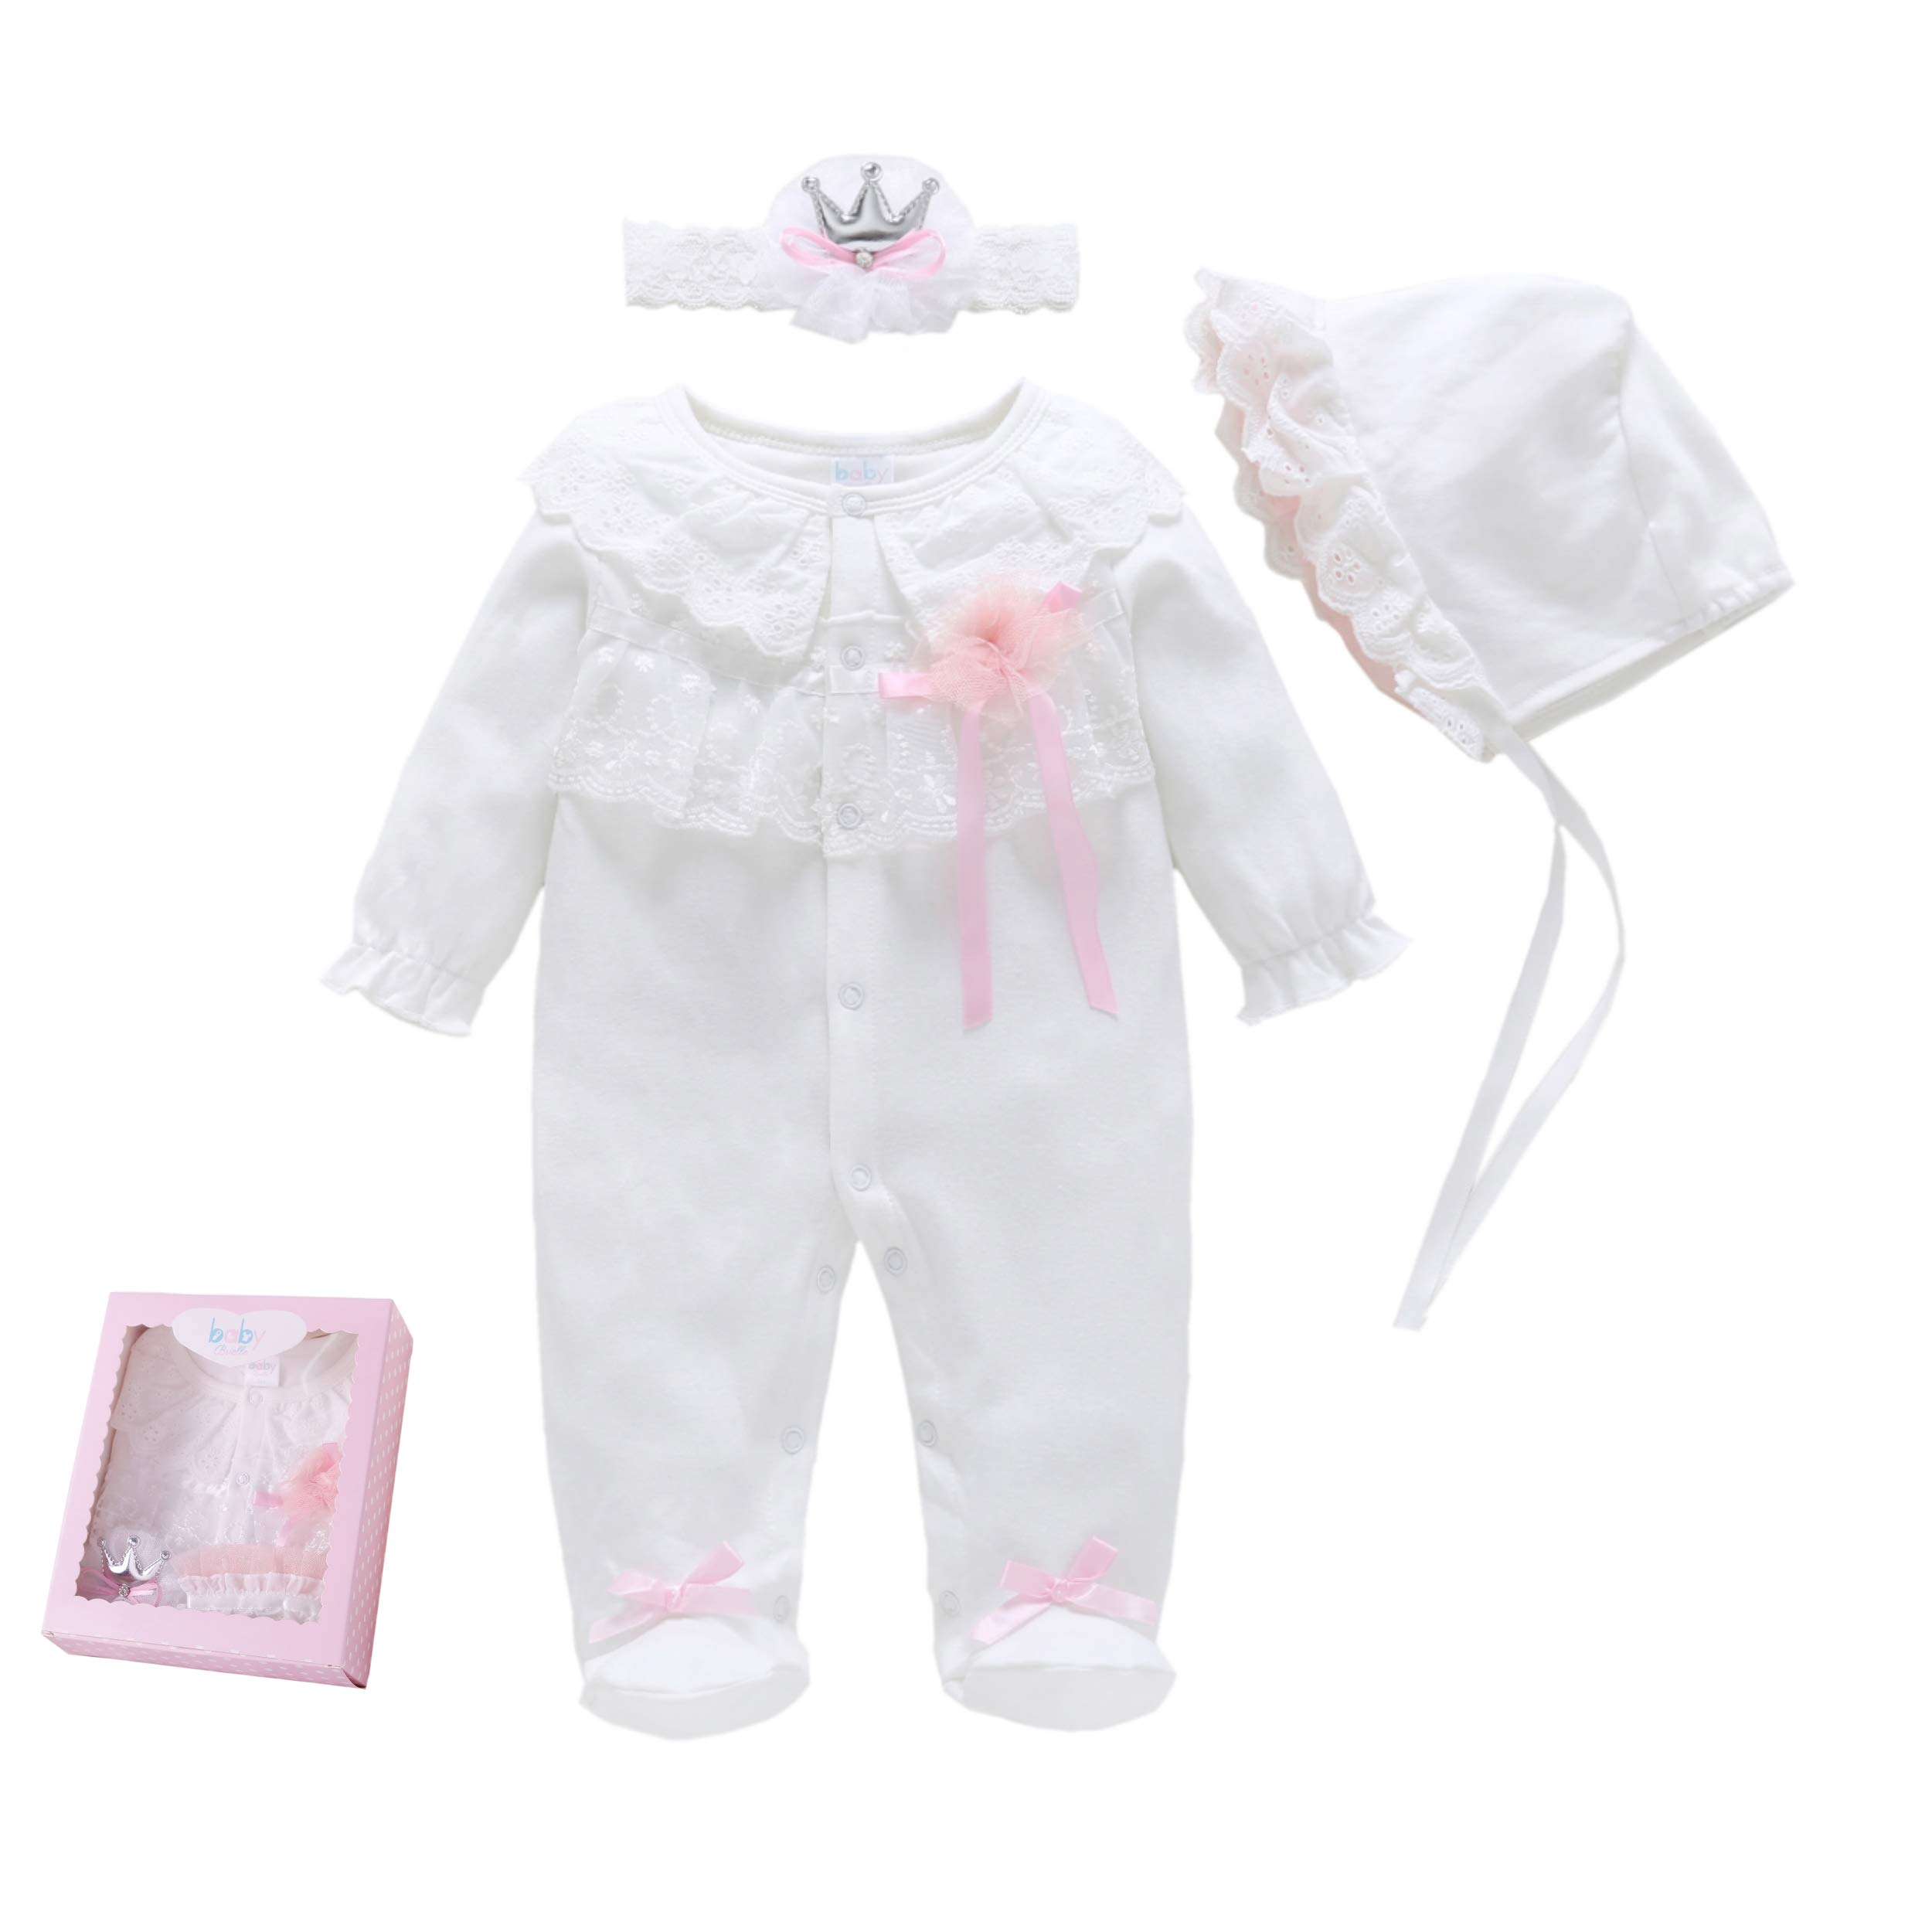 Baby Brielle Layette Onesie with Matching Hat, Headband and Socks in Box Registry Must Haves Gift Set for Girls (Pink Bow, 3M) by Baby Brielle